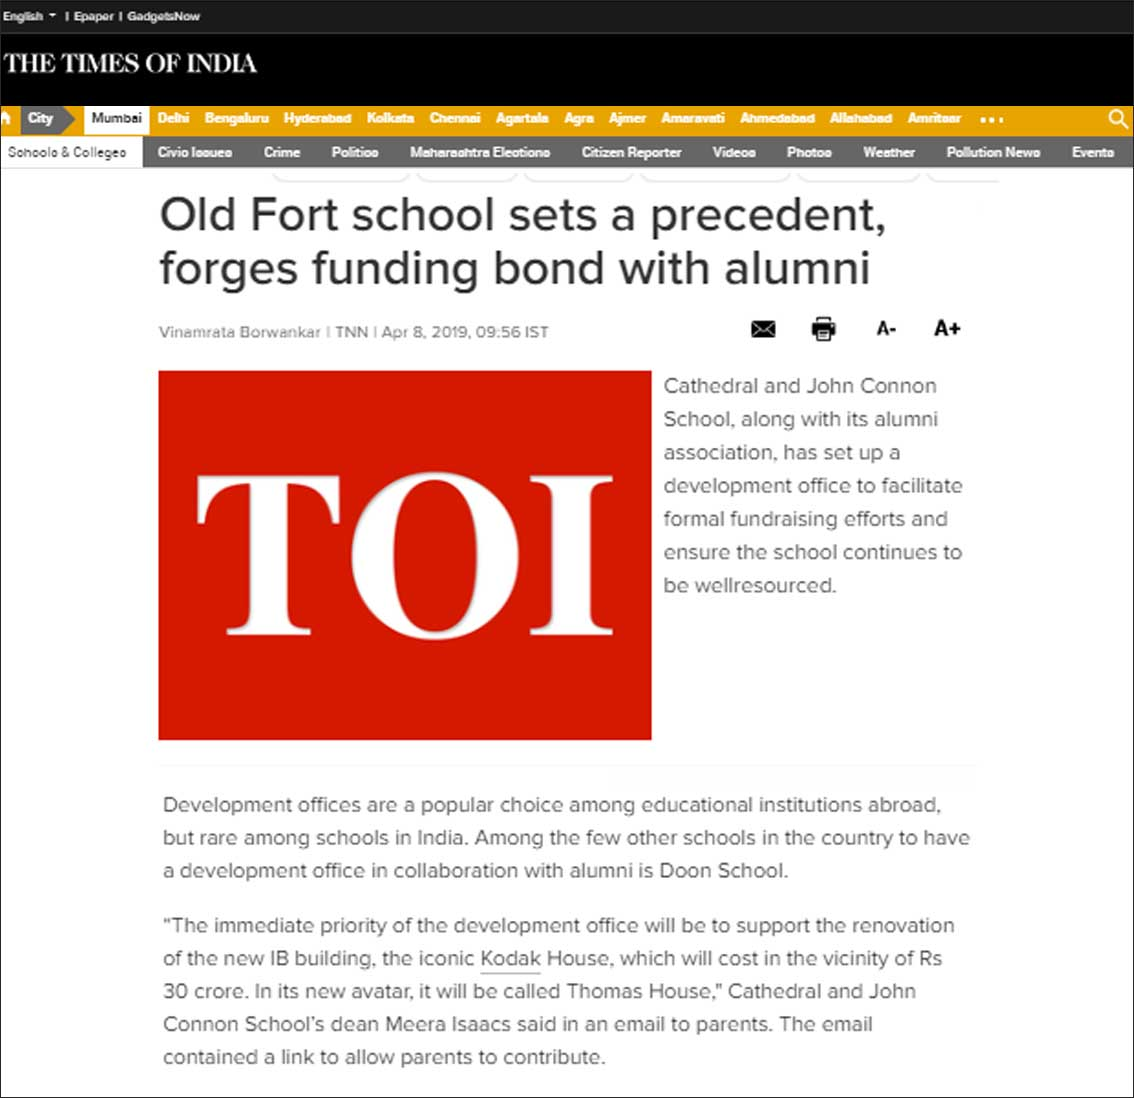 Old fort school sets a precedent, forges funding bond with alumni, The Times of India - April 2019